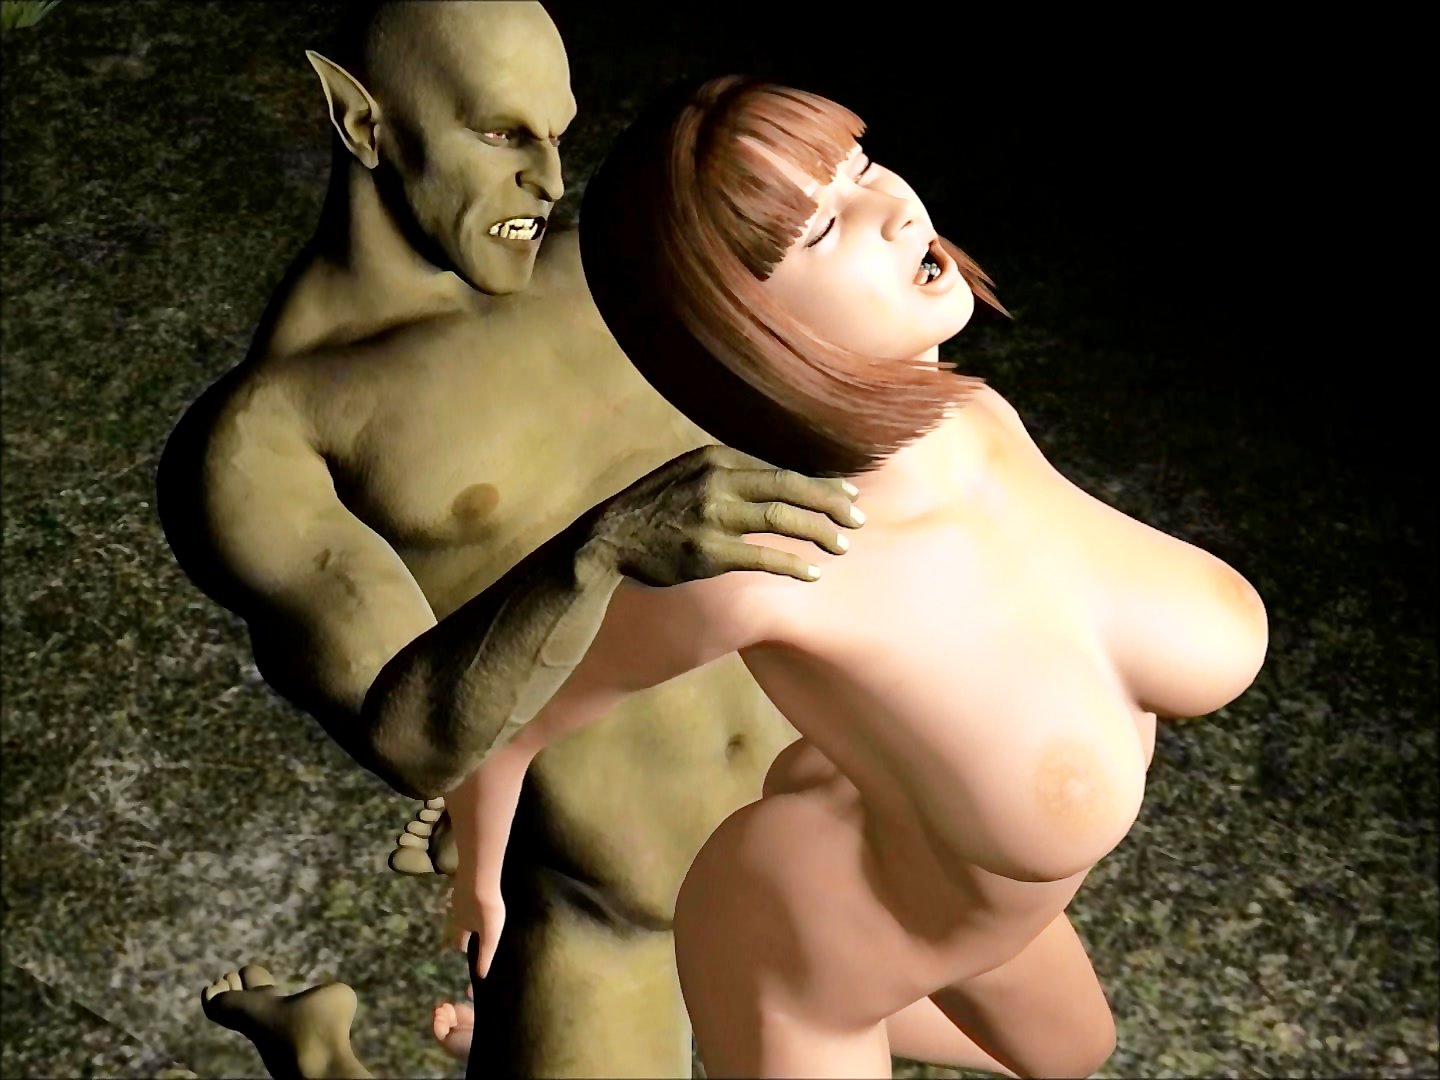 Free uncensored 3d monster fuck video exposed scene